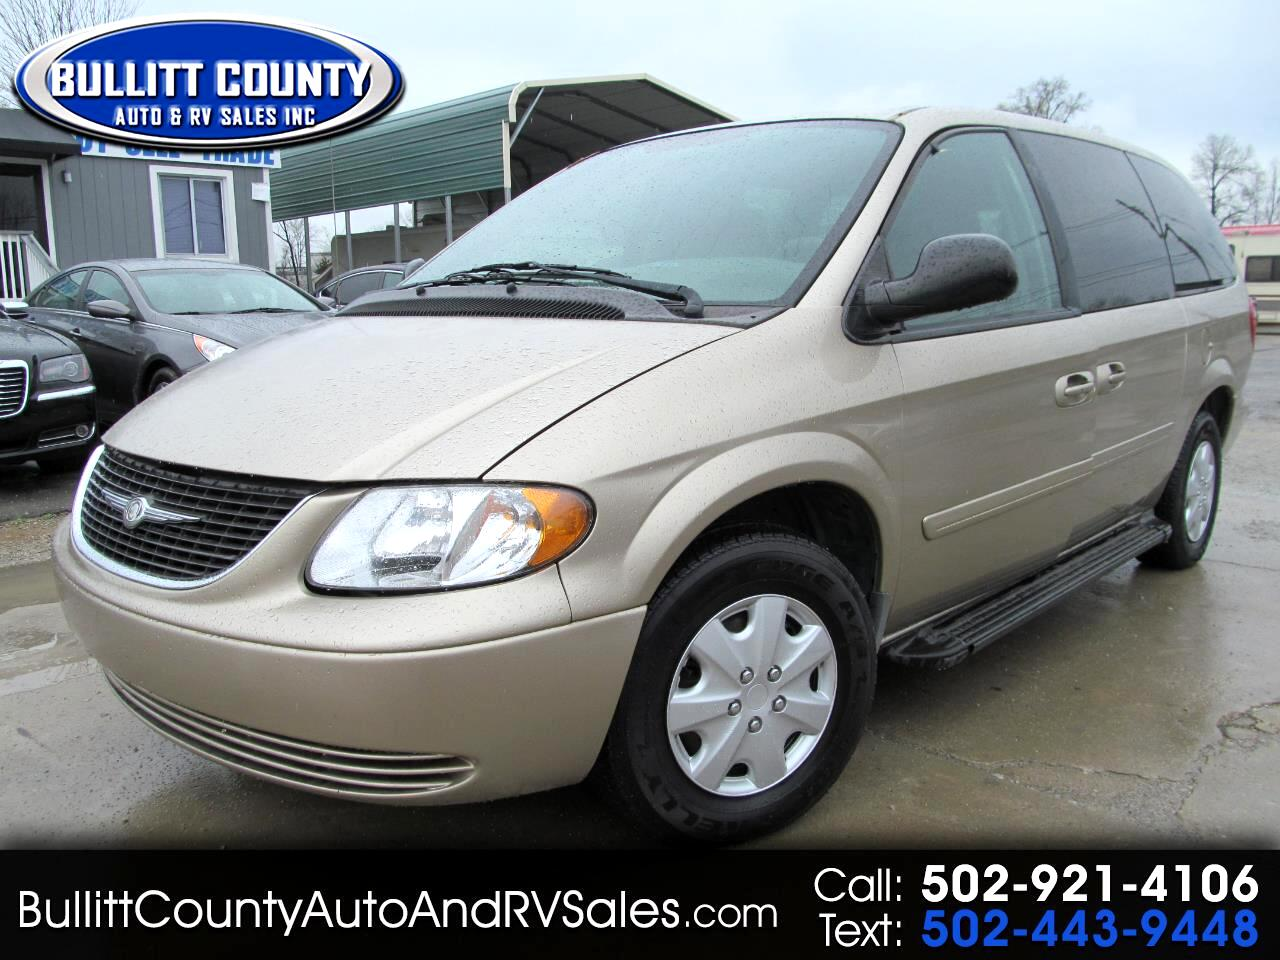 2004 Chrysler Town & Country 4dr LX FWD